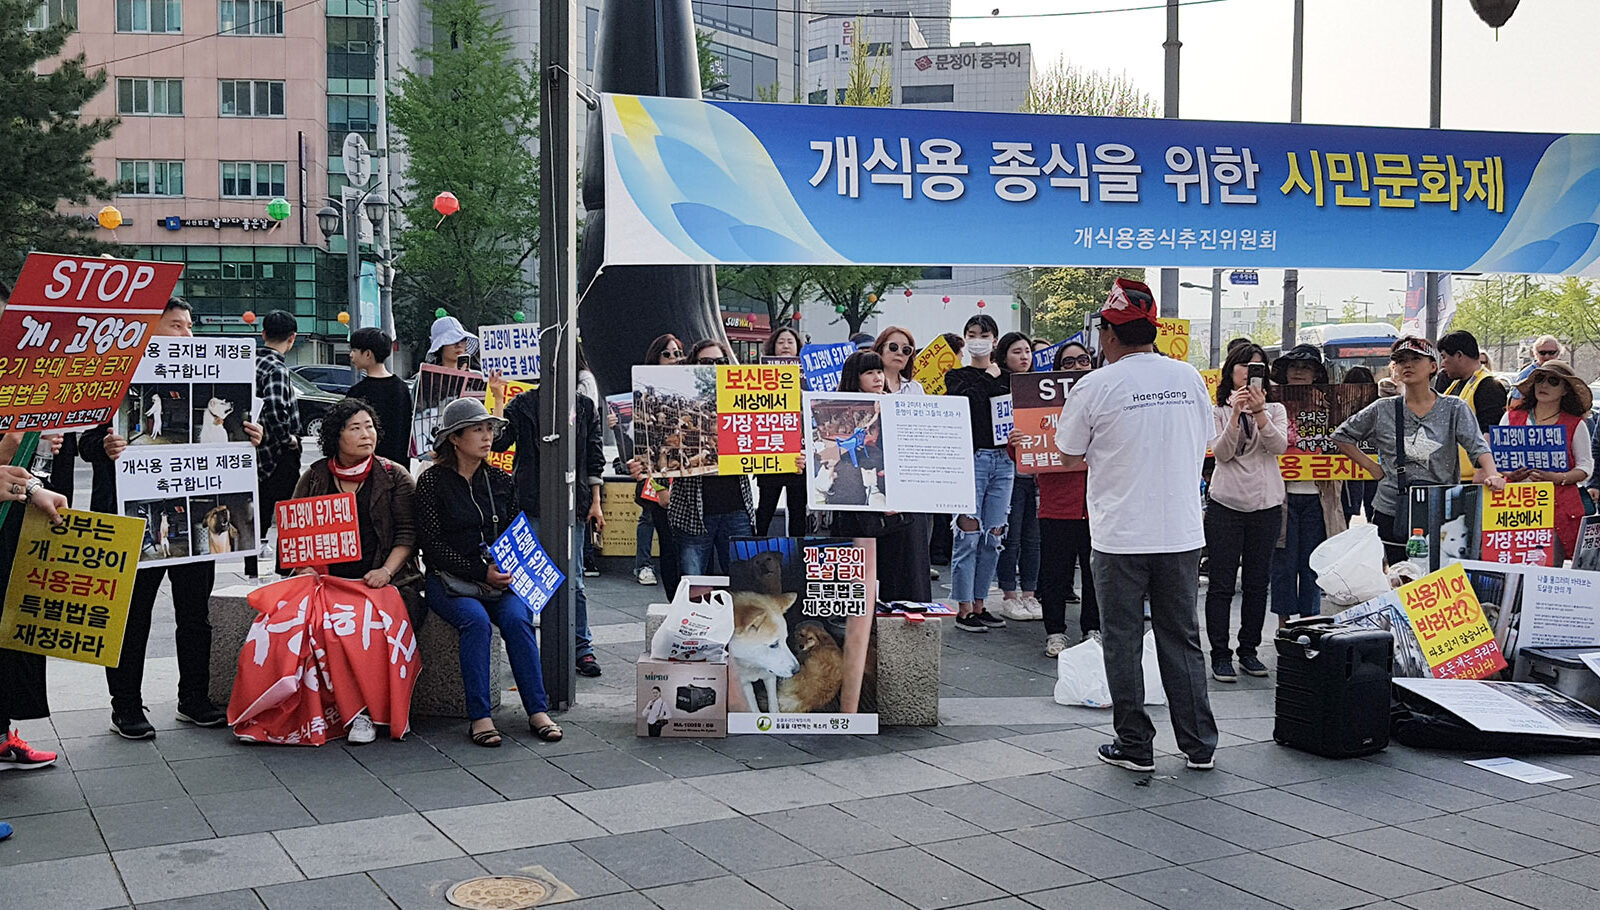 Boknal: Did You Know?